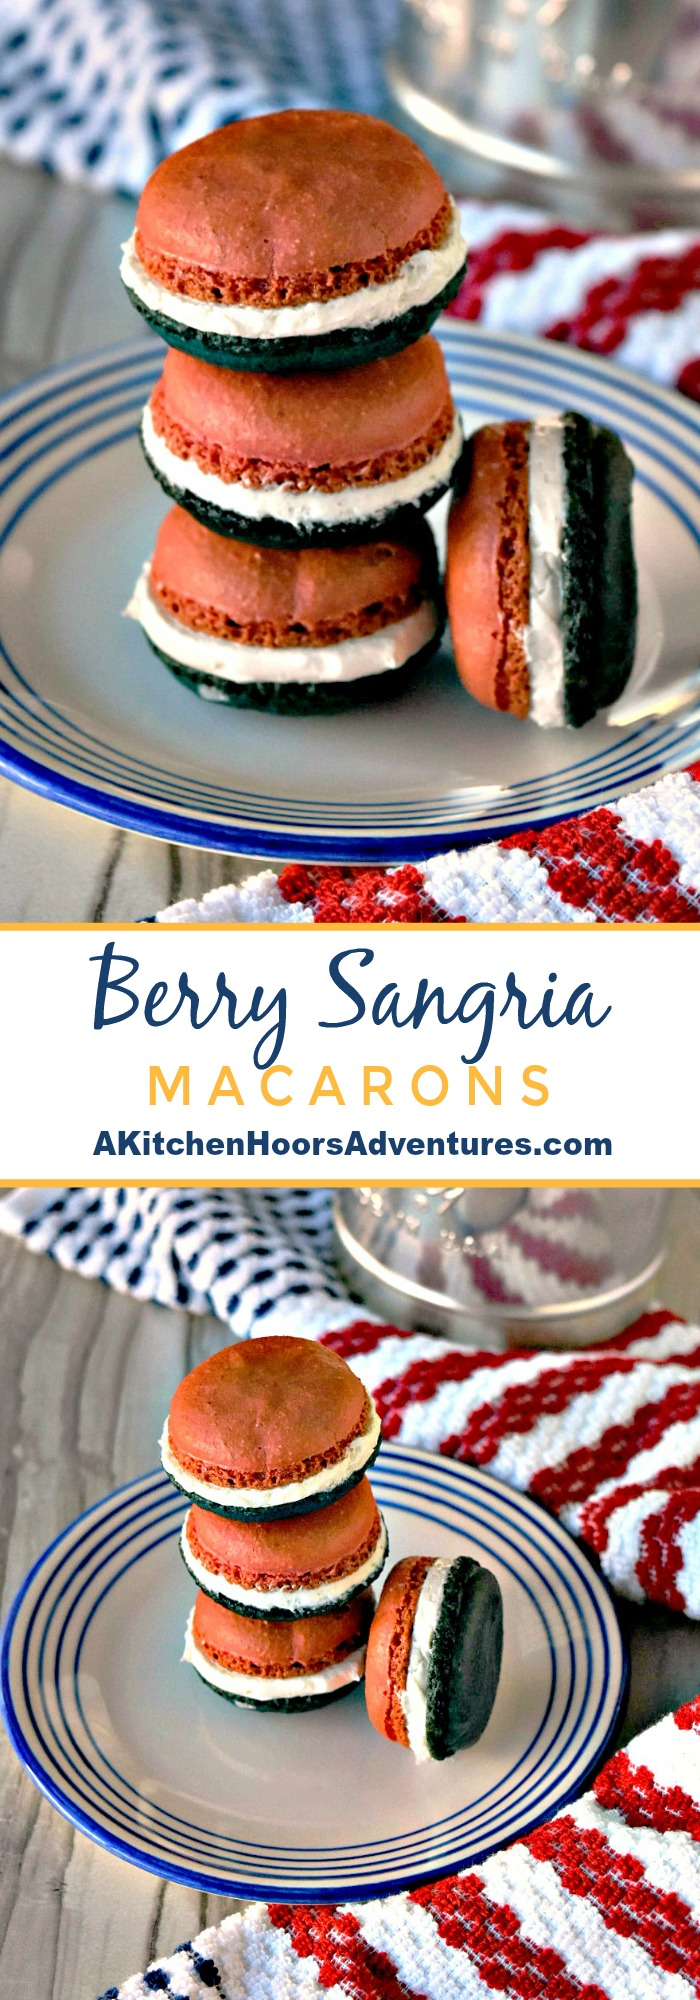 Berry Sangria Macaron has all the flavor of the drink that shares it's name.  These macaron have strawberries and blueberries in the shells and white wine buttercream in the middle.  They're have great sangria flavor in a delicate cookie. #macaron #sangria